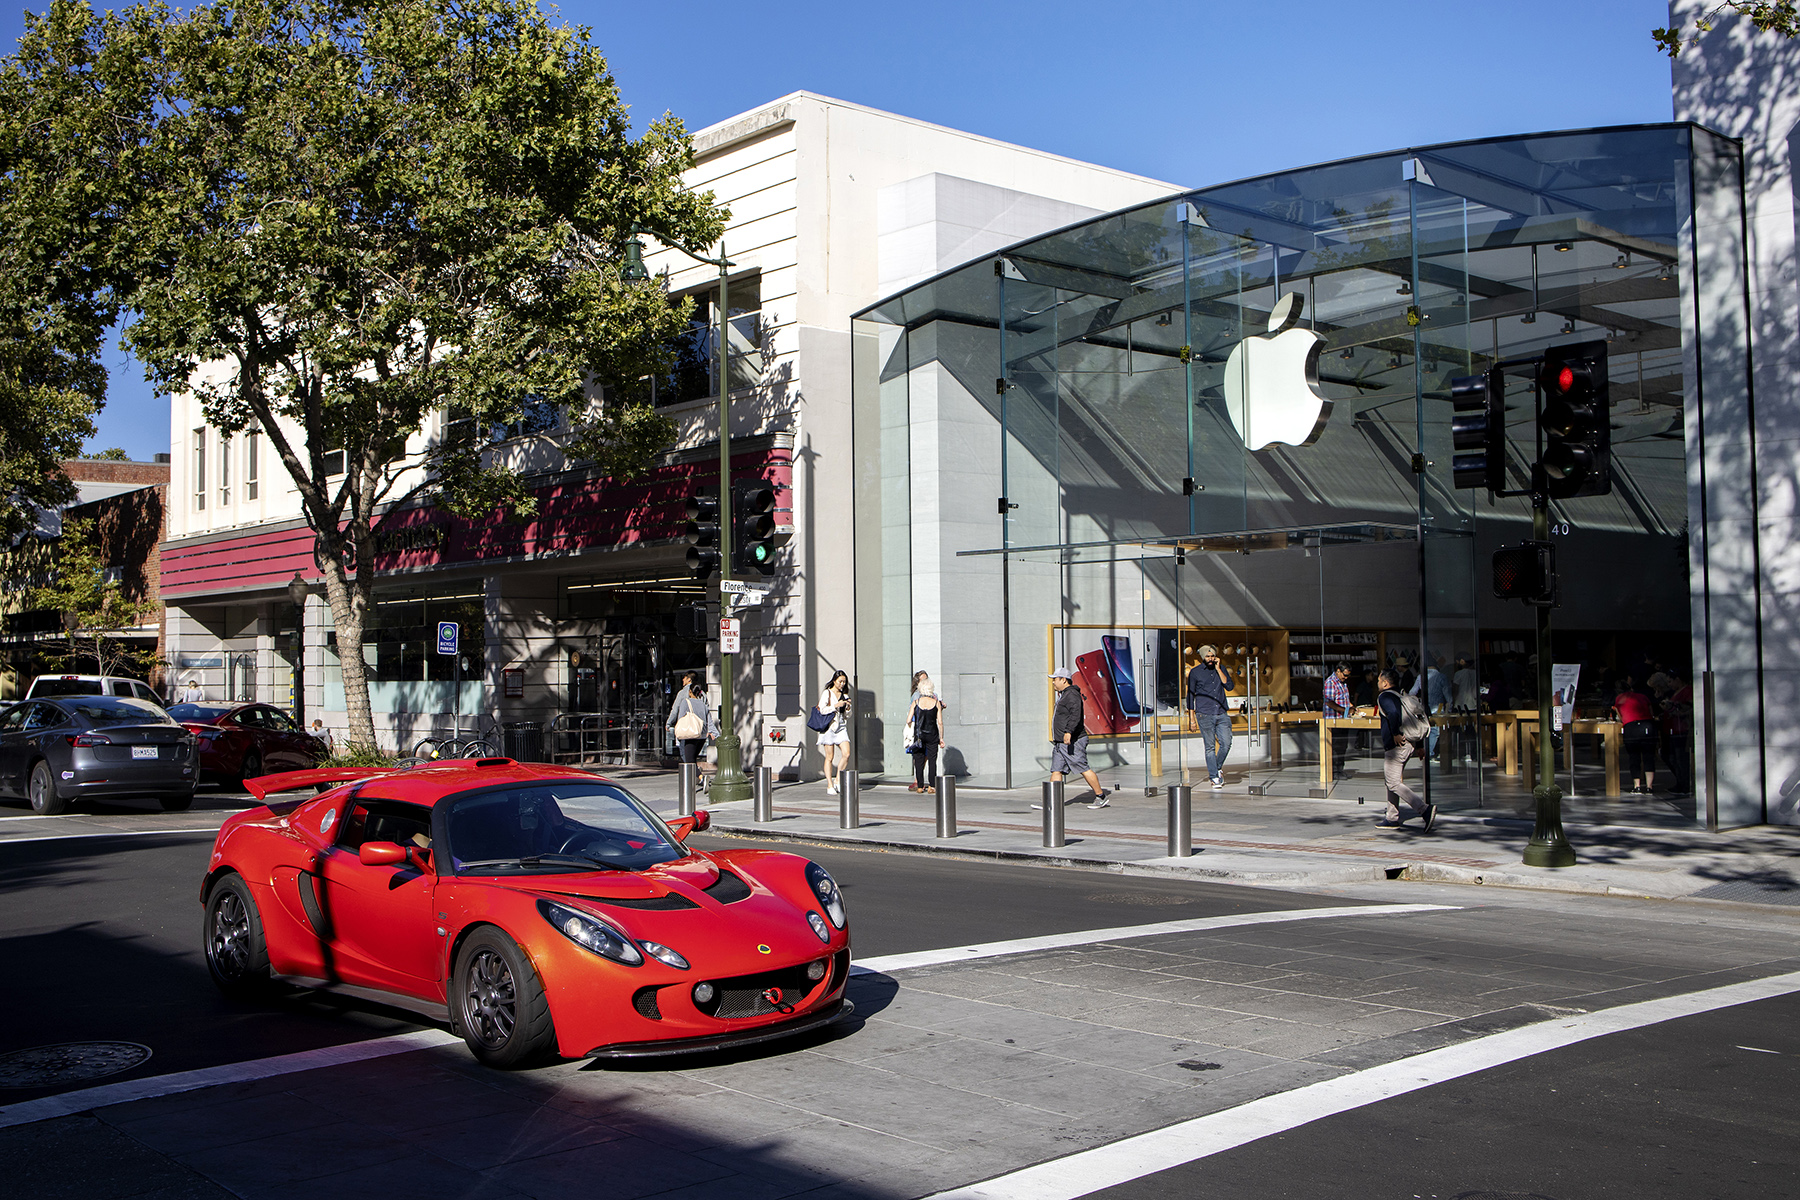 A sports car drives past the Apple Store on University Avenue in an area of downtown that is lined with retail and food establishments in Palo Alto, Calif., on June 7, 2019. Apple co-founder Steve Jobs lived in the town for much of his life. The U.S. Census bureau's most recent figure, in 2012, for retail sales per capita in Palo Alto is $37,083, significantly higher than neighboring East Palo Alto.